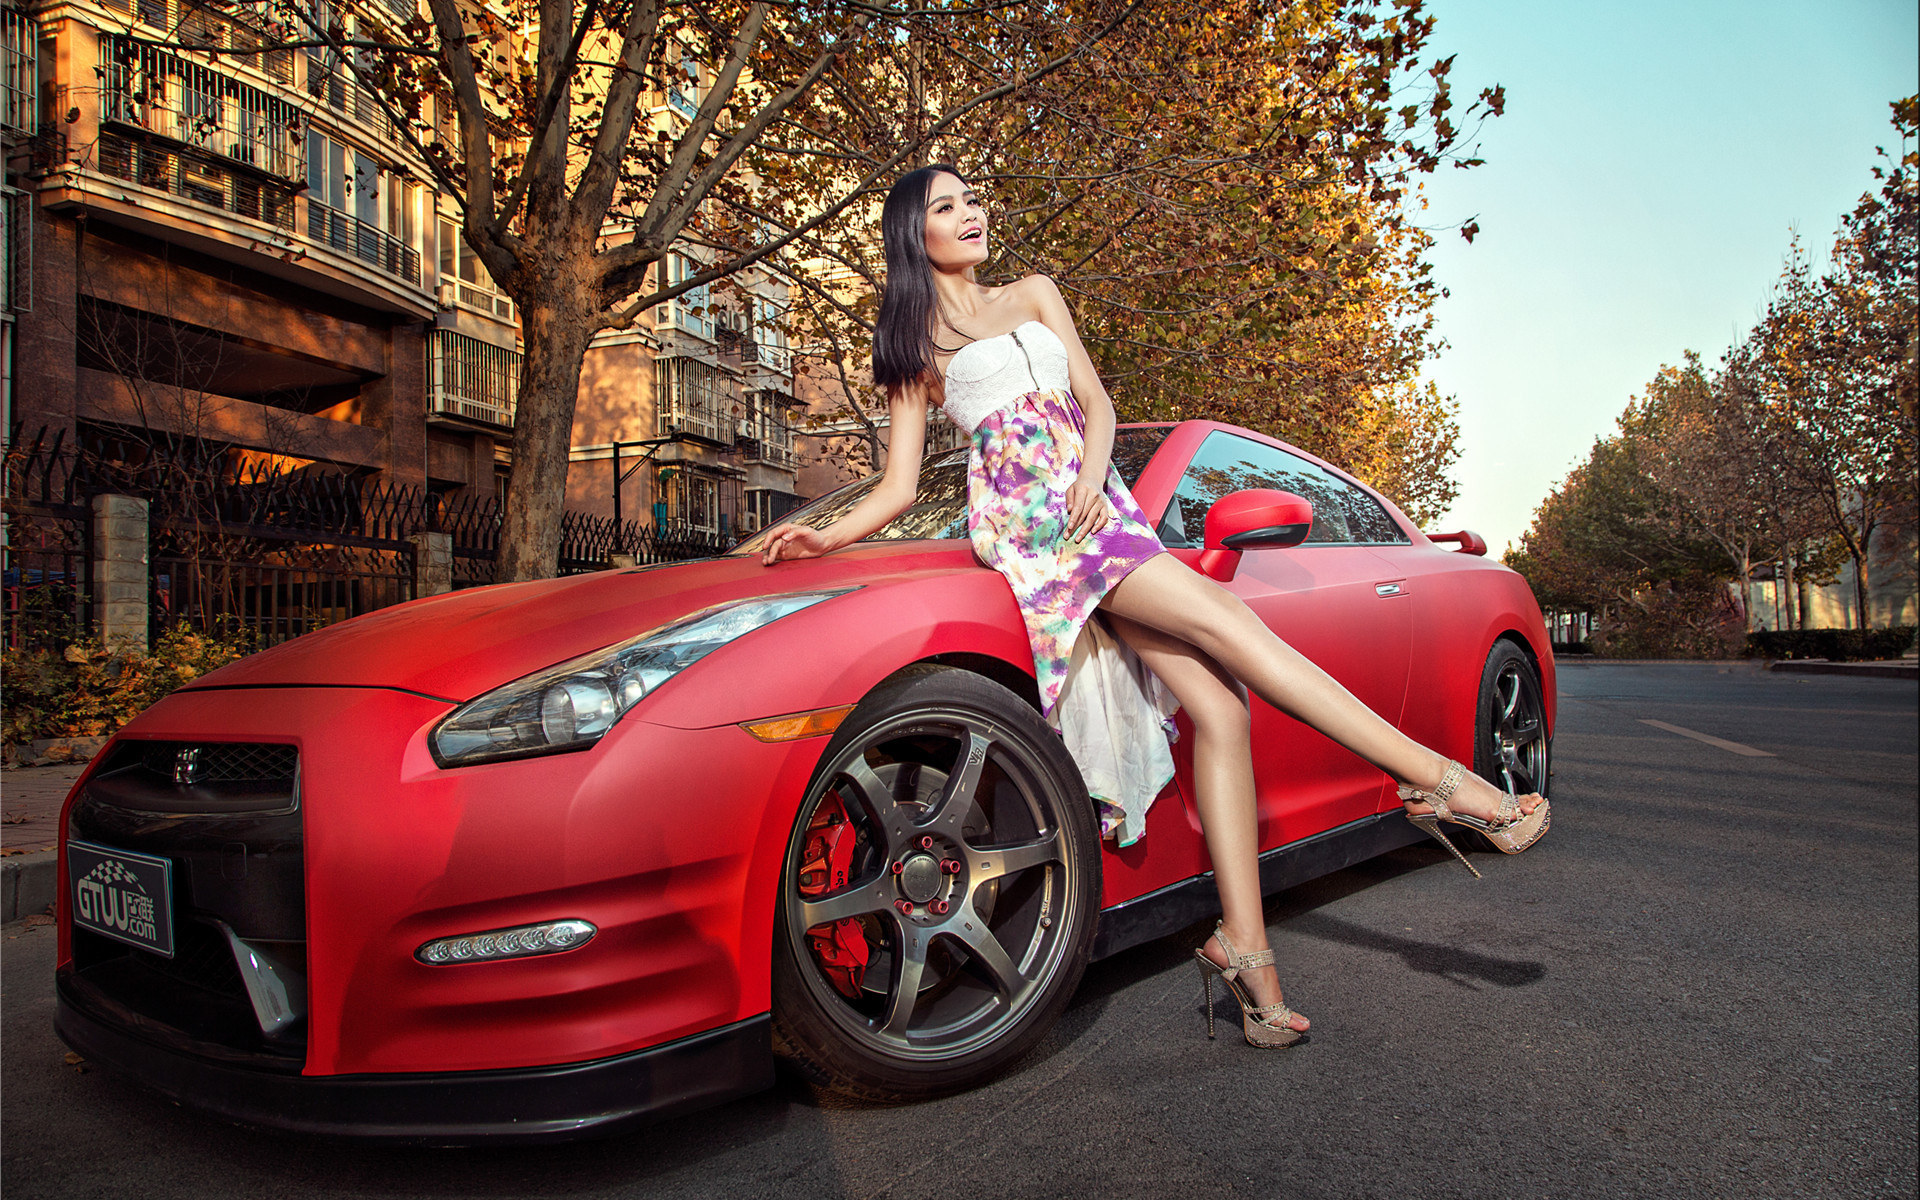 cool-asian-car-pictures-erotic-abf-stories